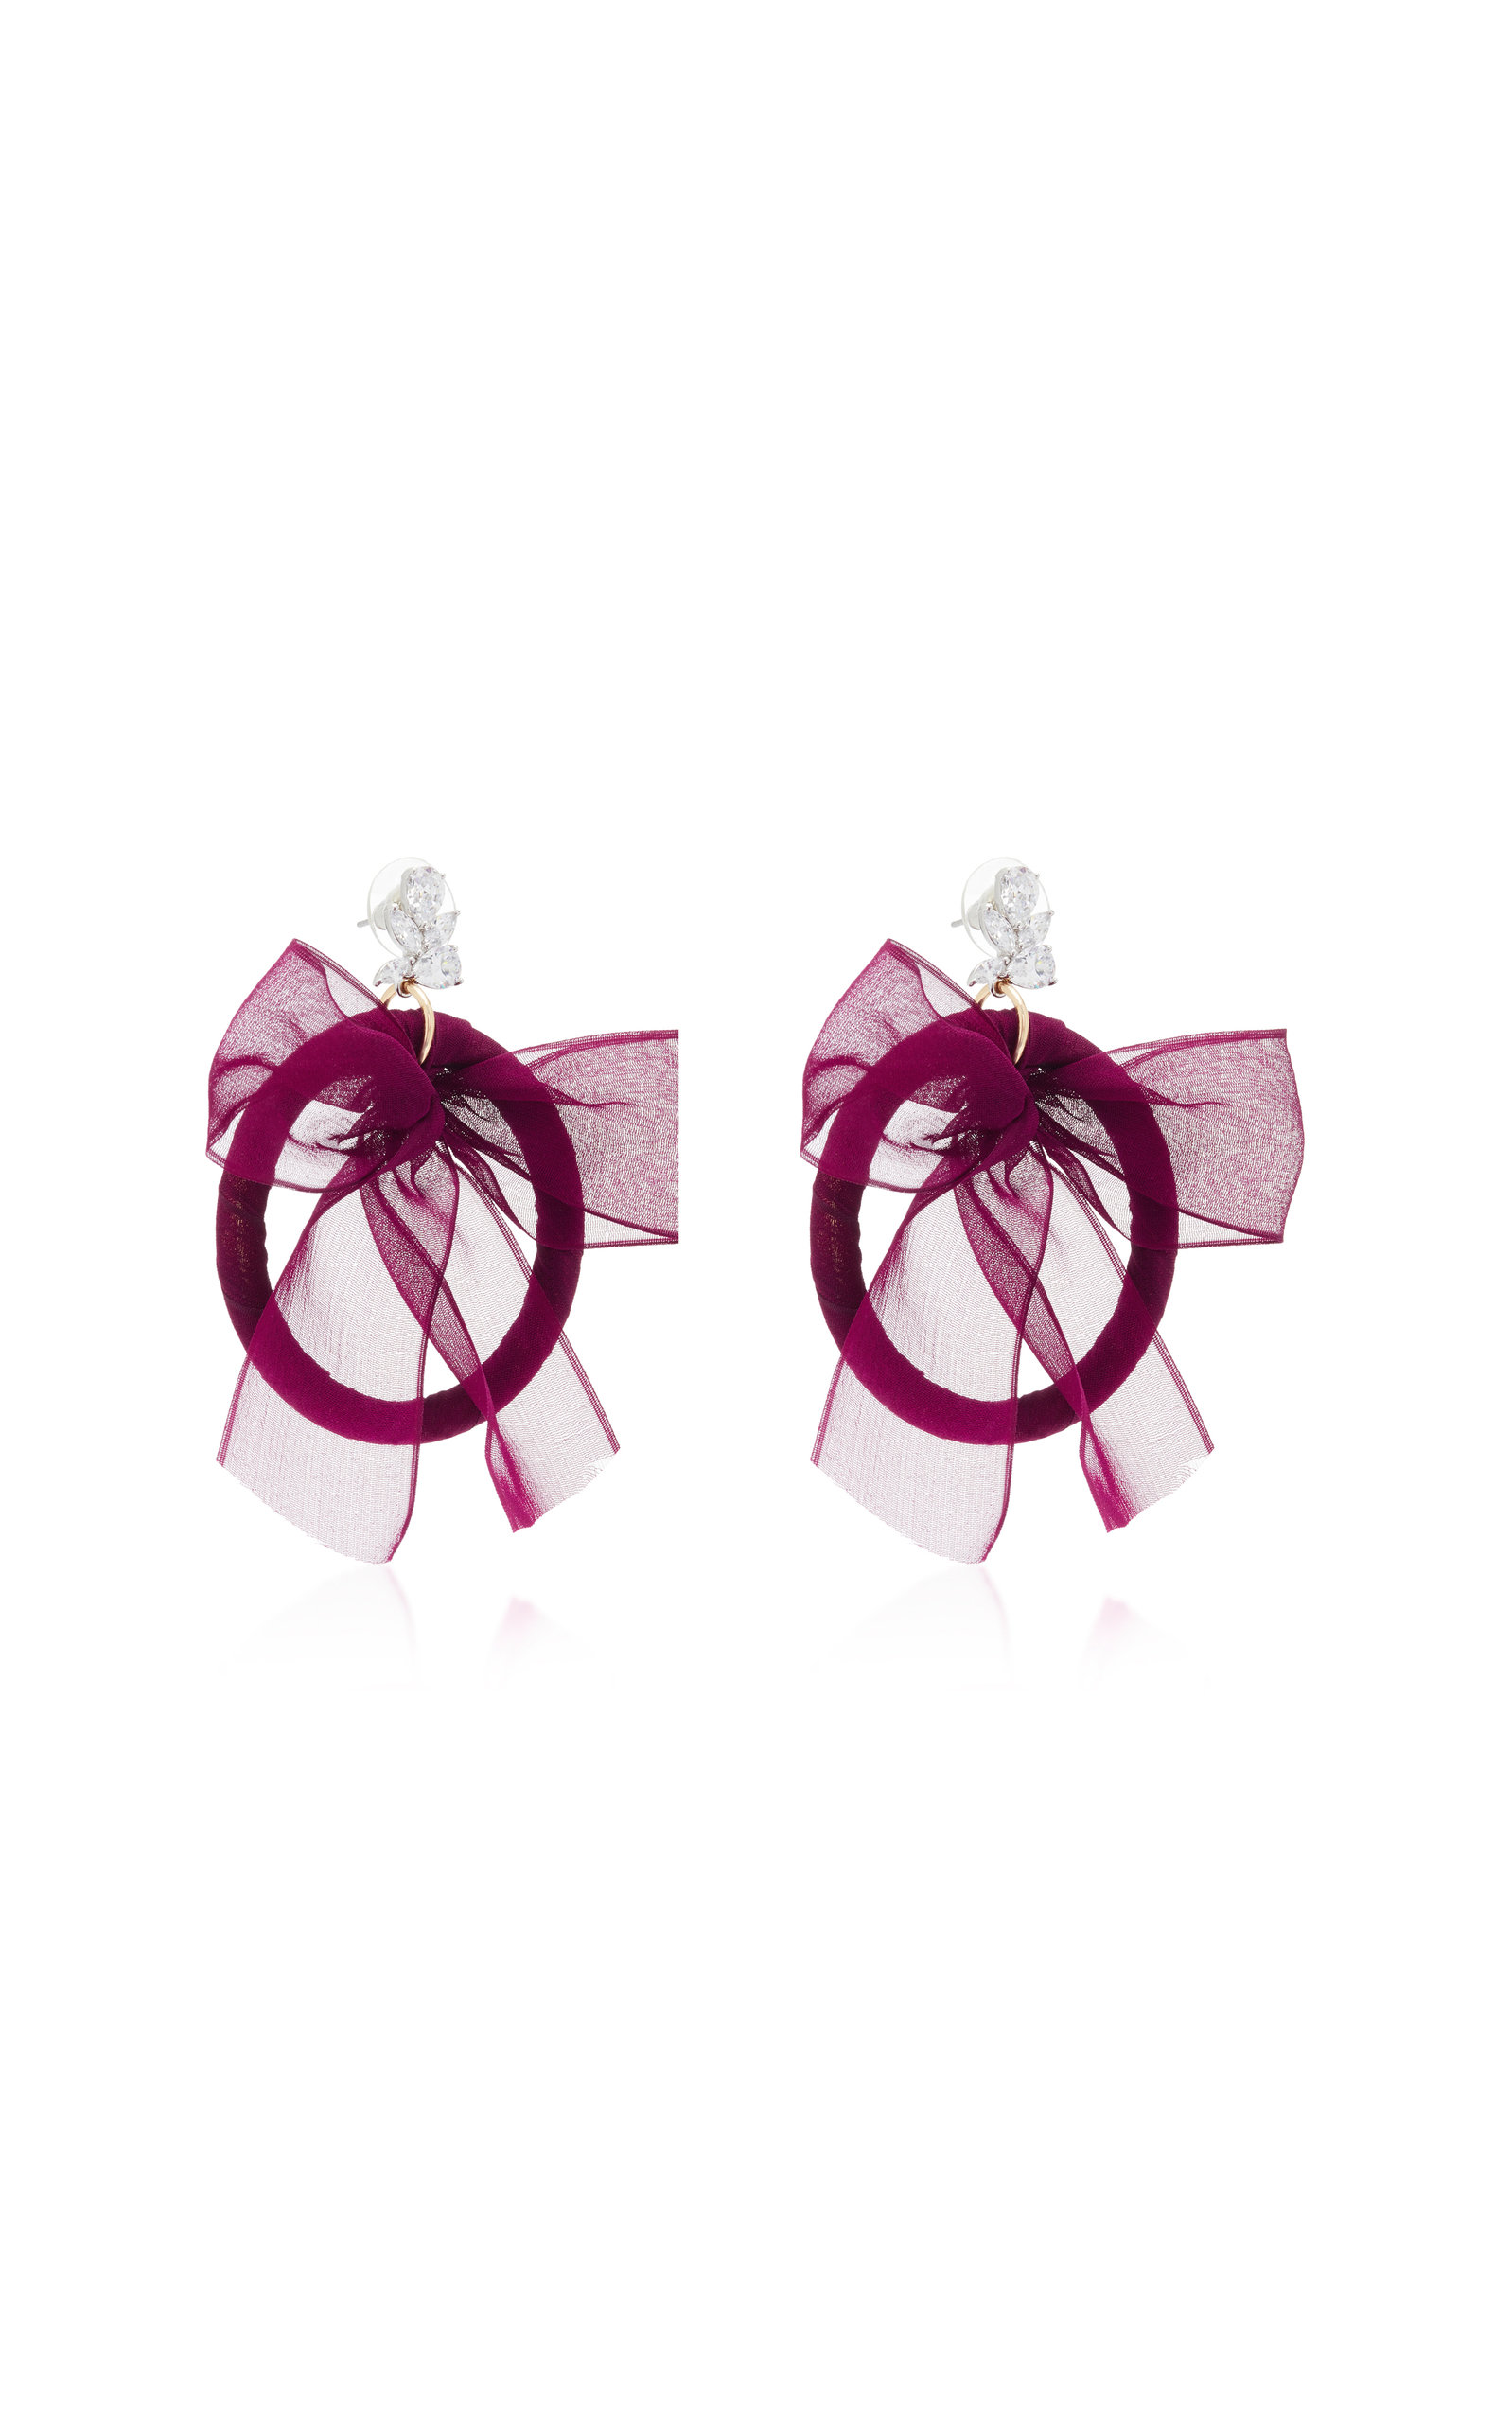 Crystal Silk And Silver-Plated Hoop Earrings Fallon oQyrtr